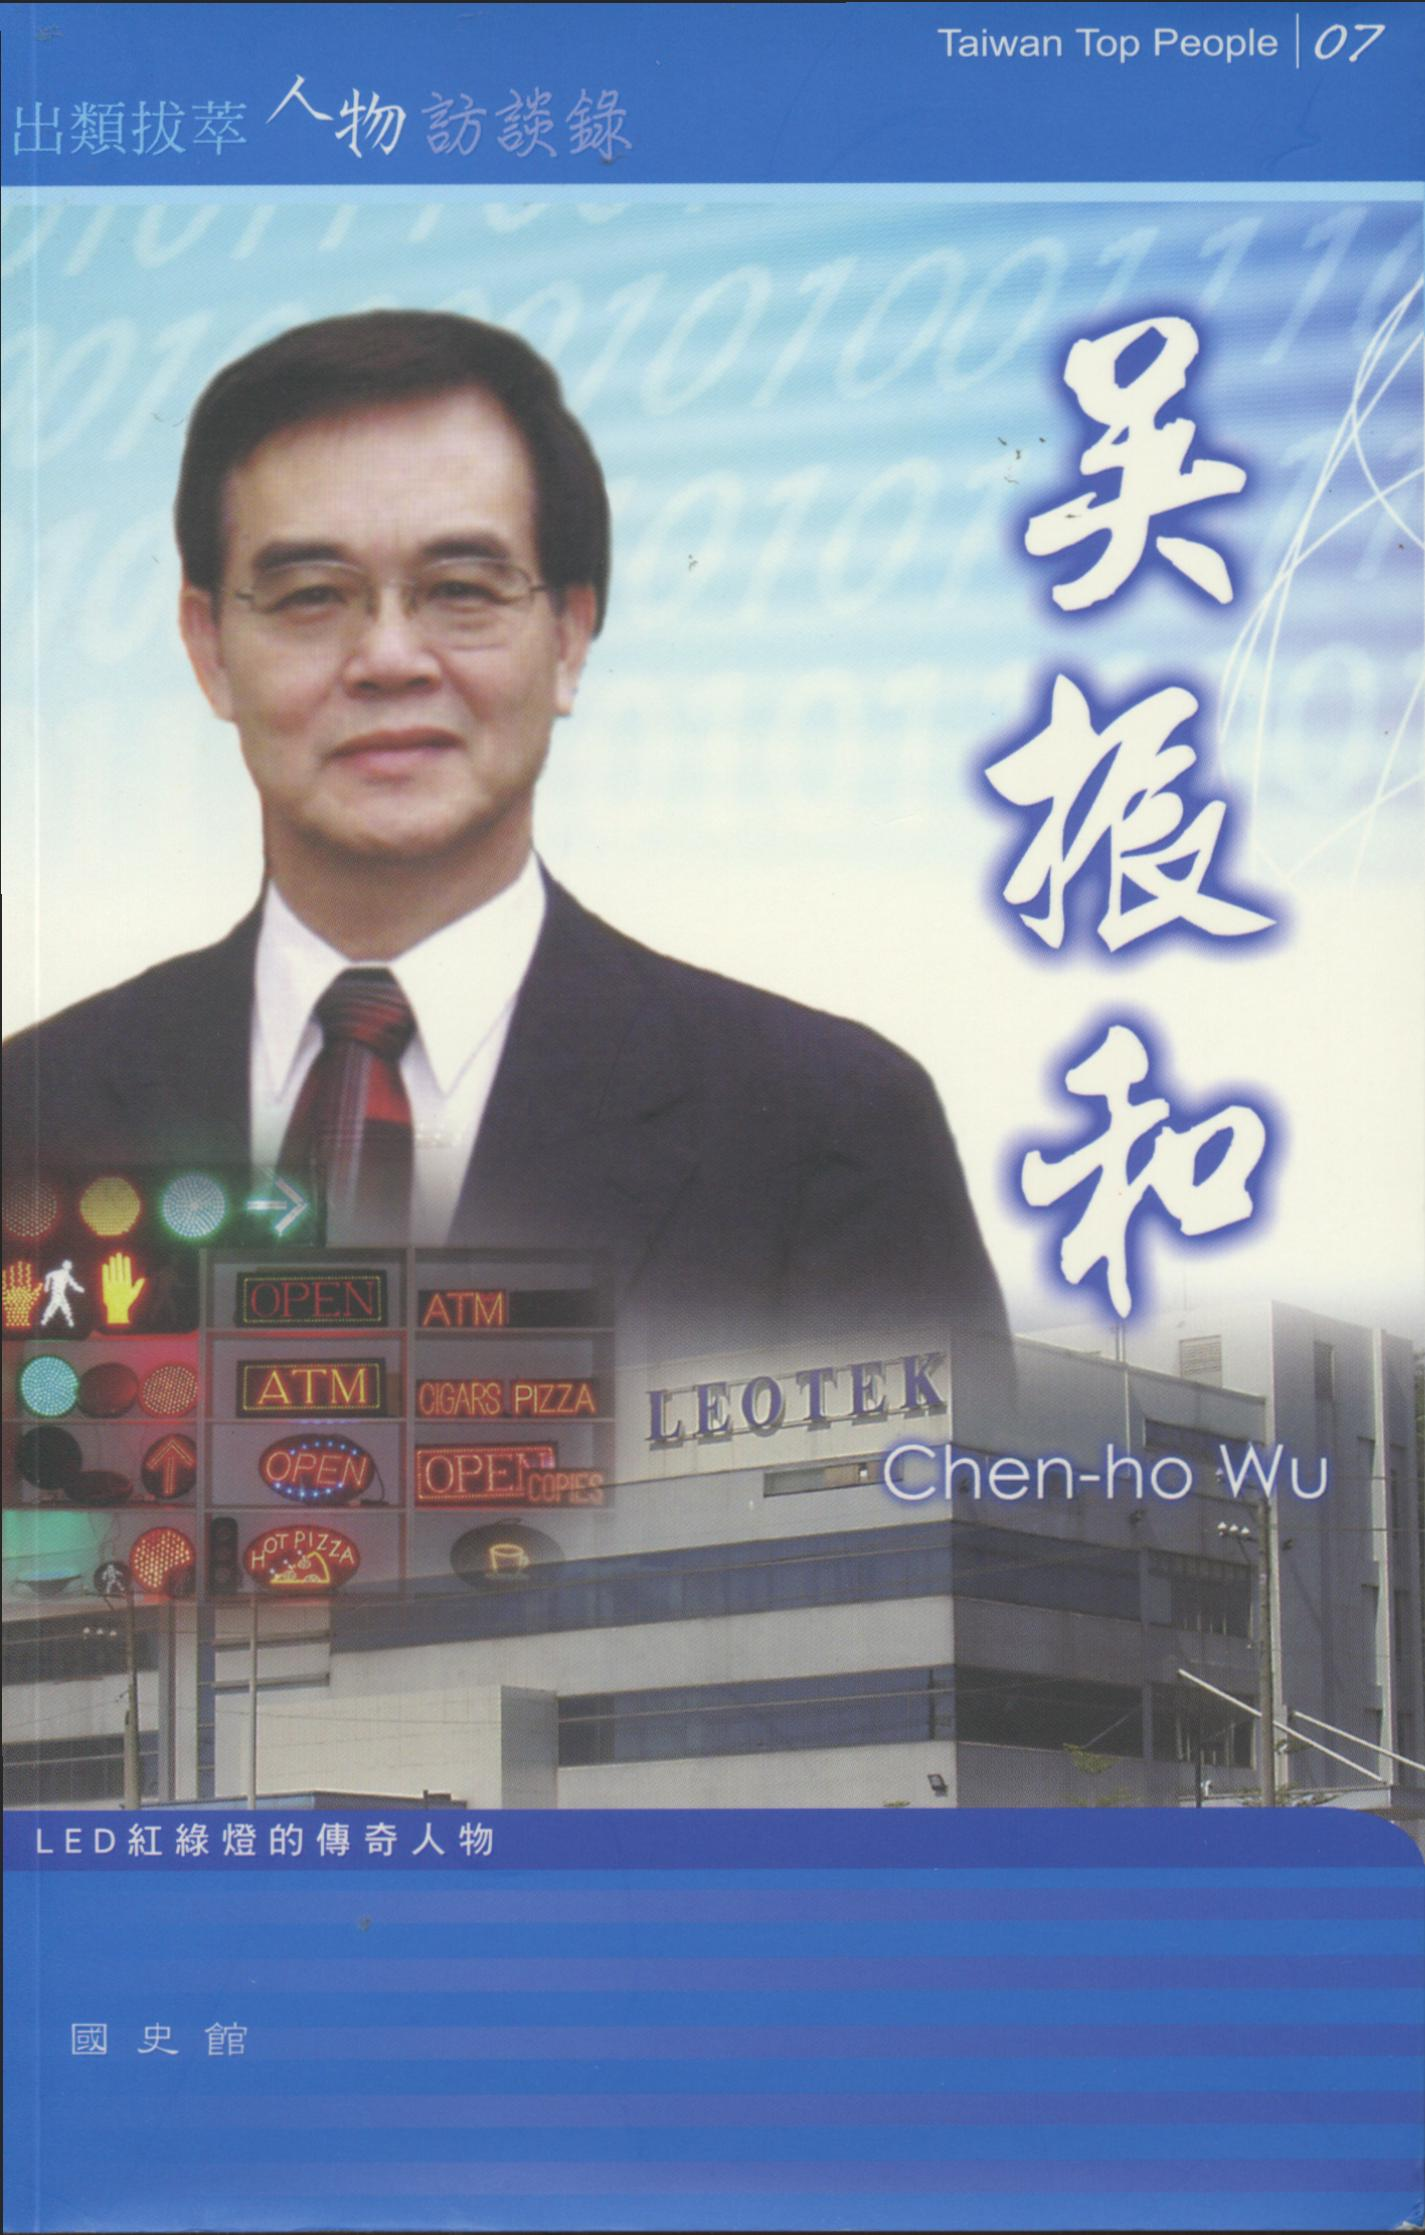 330. Dr. Chen-Ho Wu (吳振和博士) / A Renown Enterprises in LED Street Lighting Products (LED紅綠燈的傳奇人物)